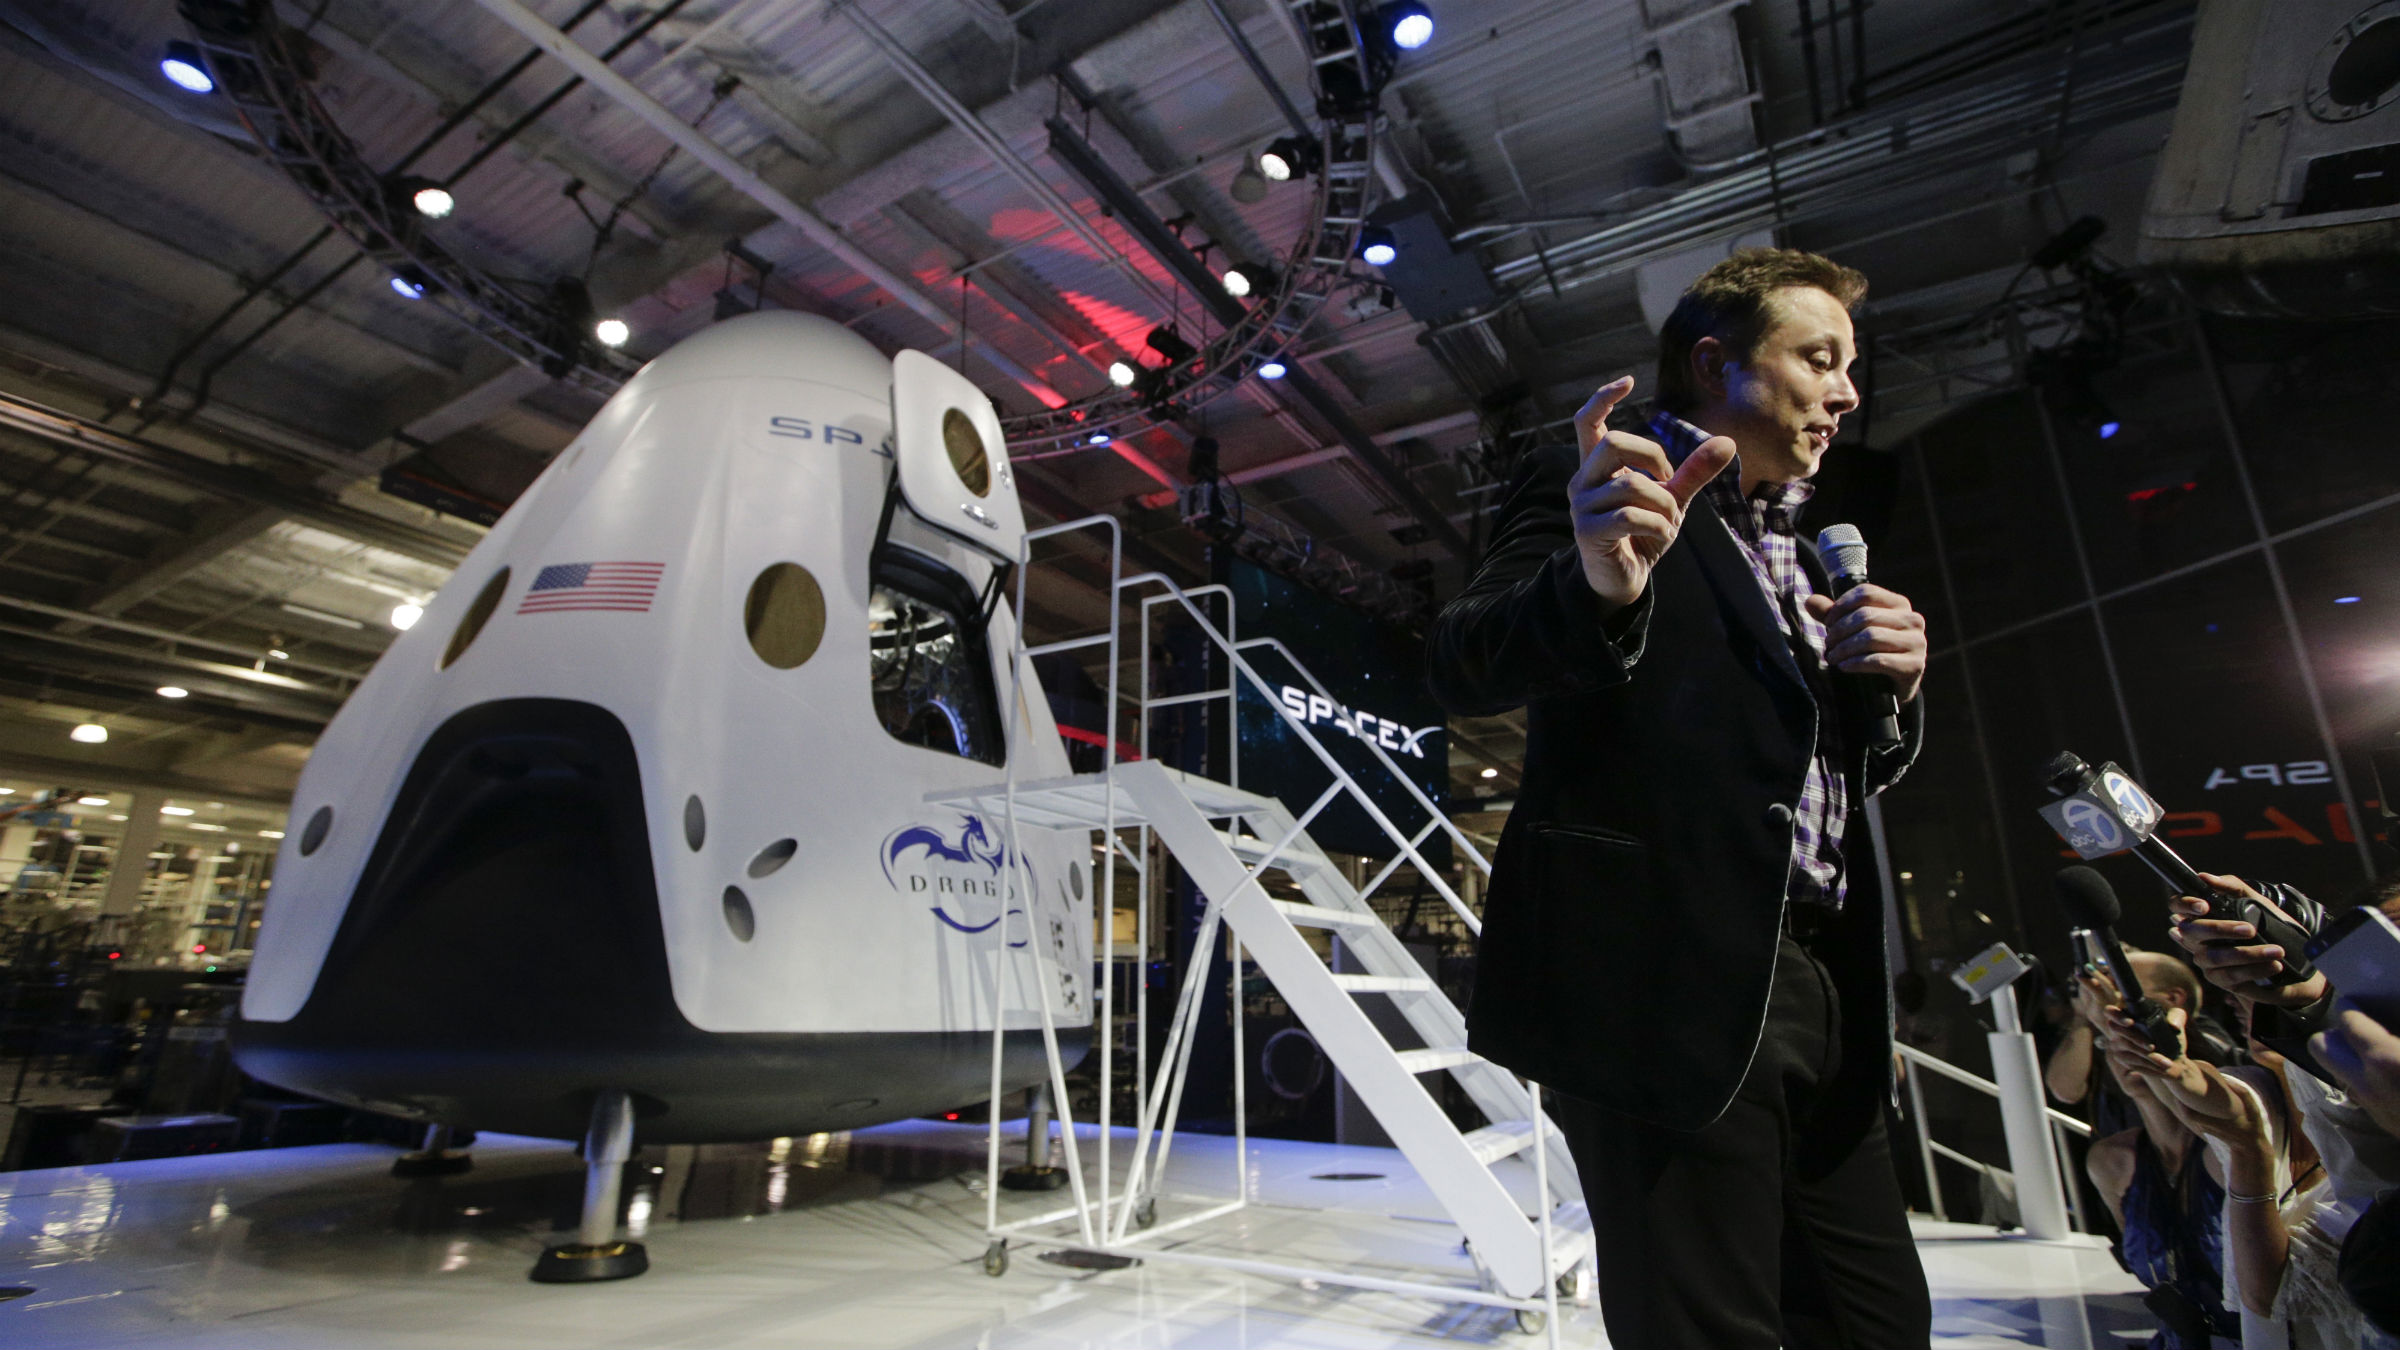 Elon Musk, CEO and CTO of SpaceX, answers questions from the media in front of the SpaceX Dragon V2 spaceship at the headquarters on Thursday, May 29, 2014, in Hawthorne, Calif. SpaceX, which has flown unmanned cargo capsules to the International Space Station, unveiled the new spacecraft Thursday designed to ferry astronauts to low-Earth orbit.